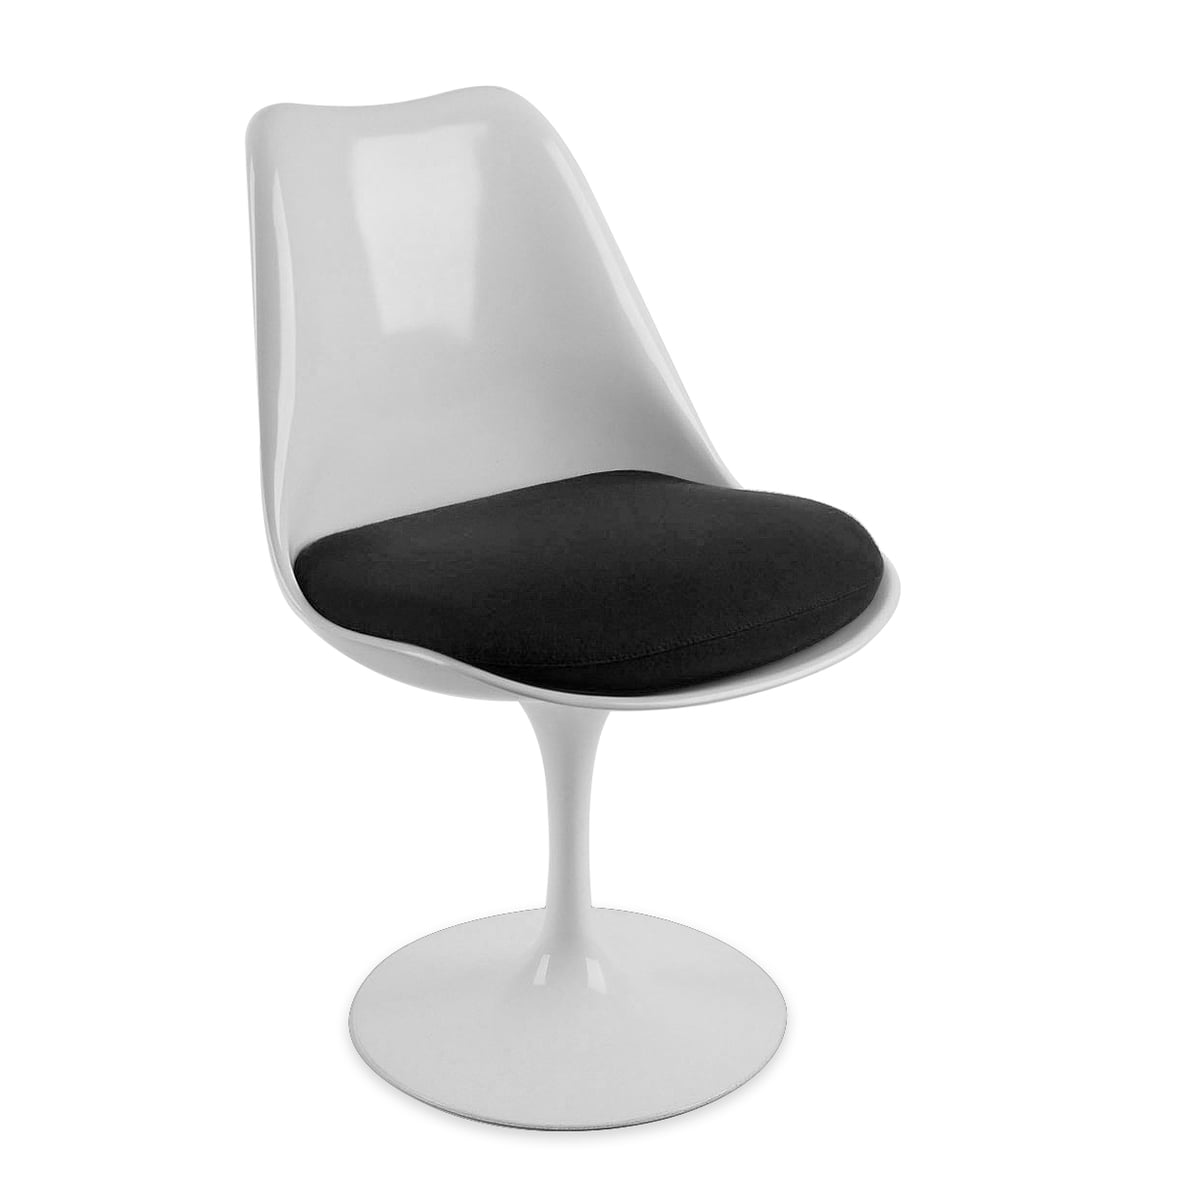 Knoll   Saarinen Tulip Chair, White / Chair Cushion Black